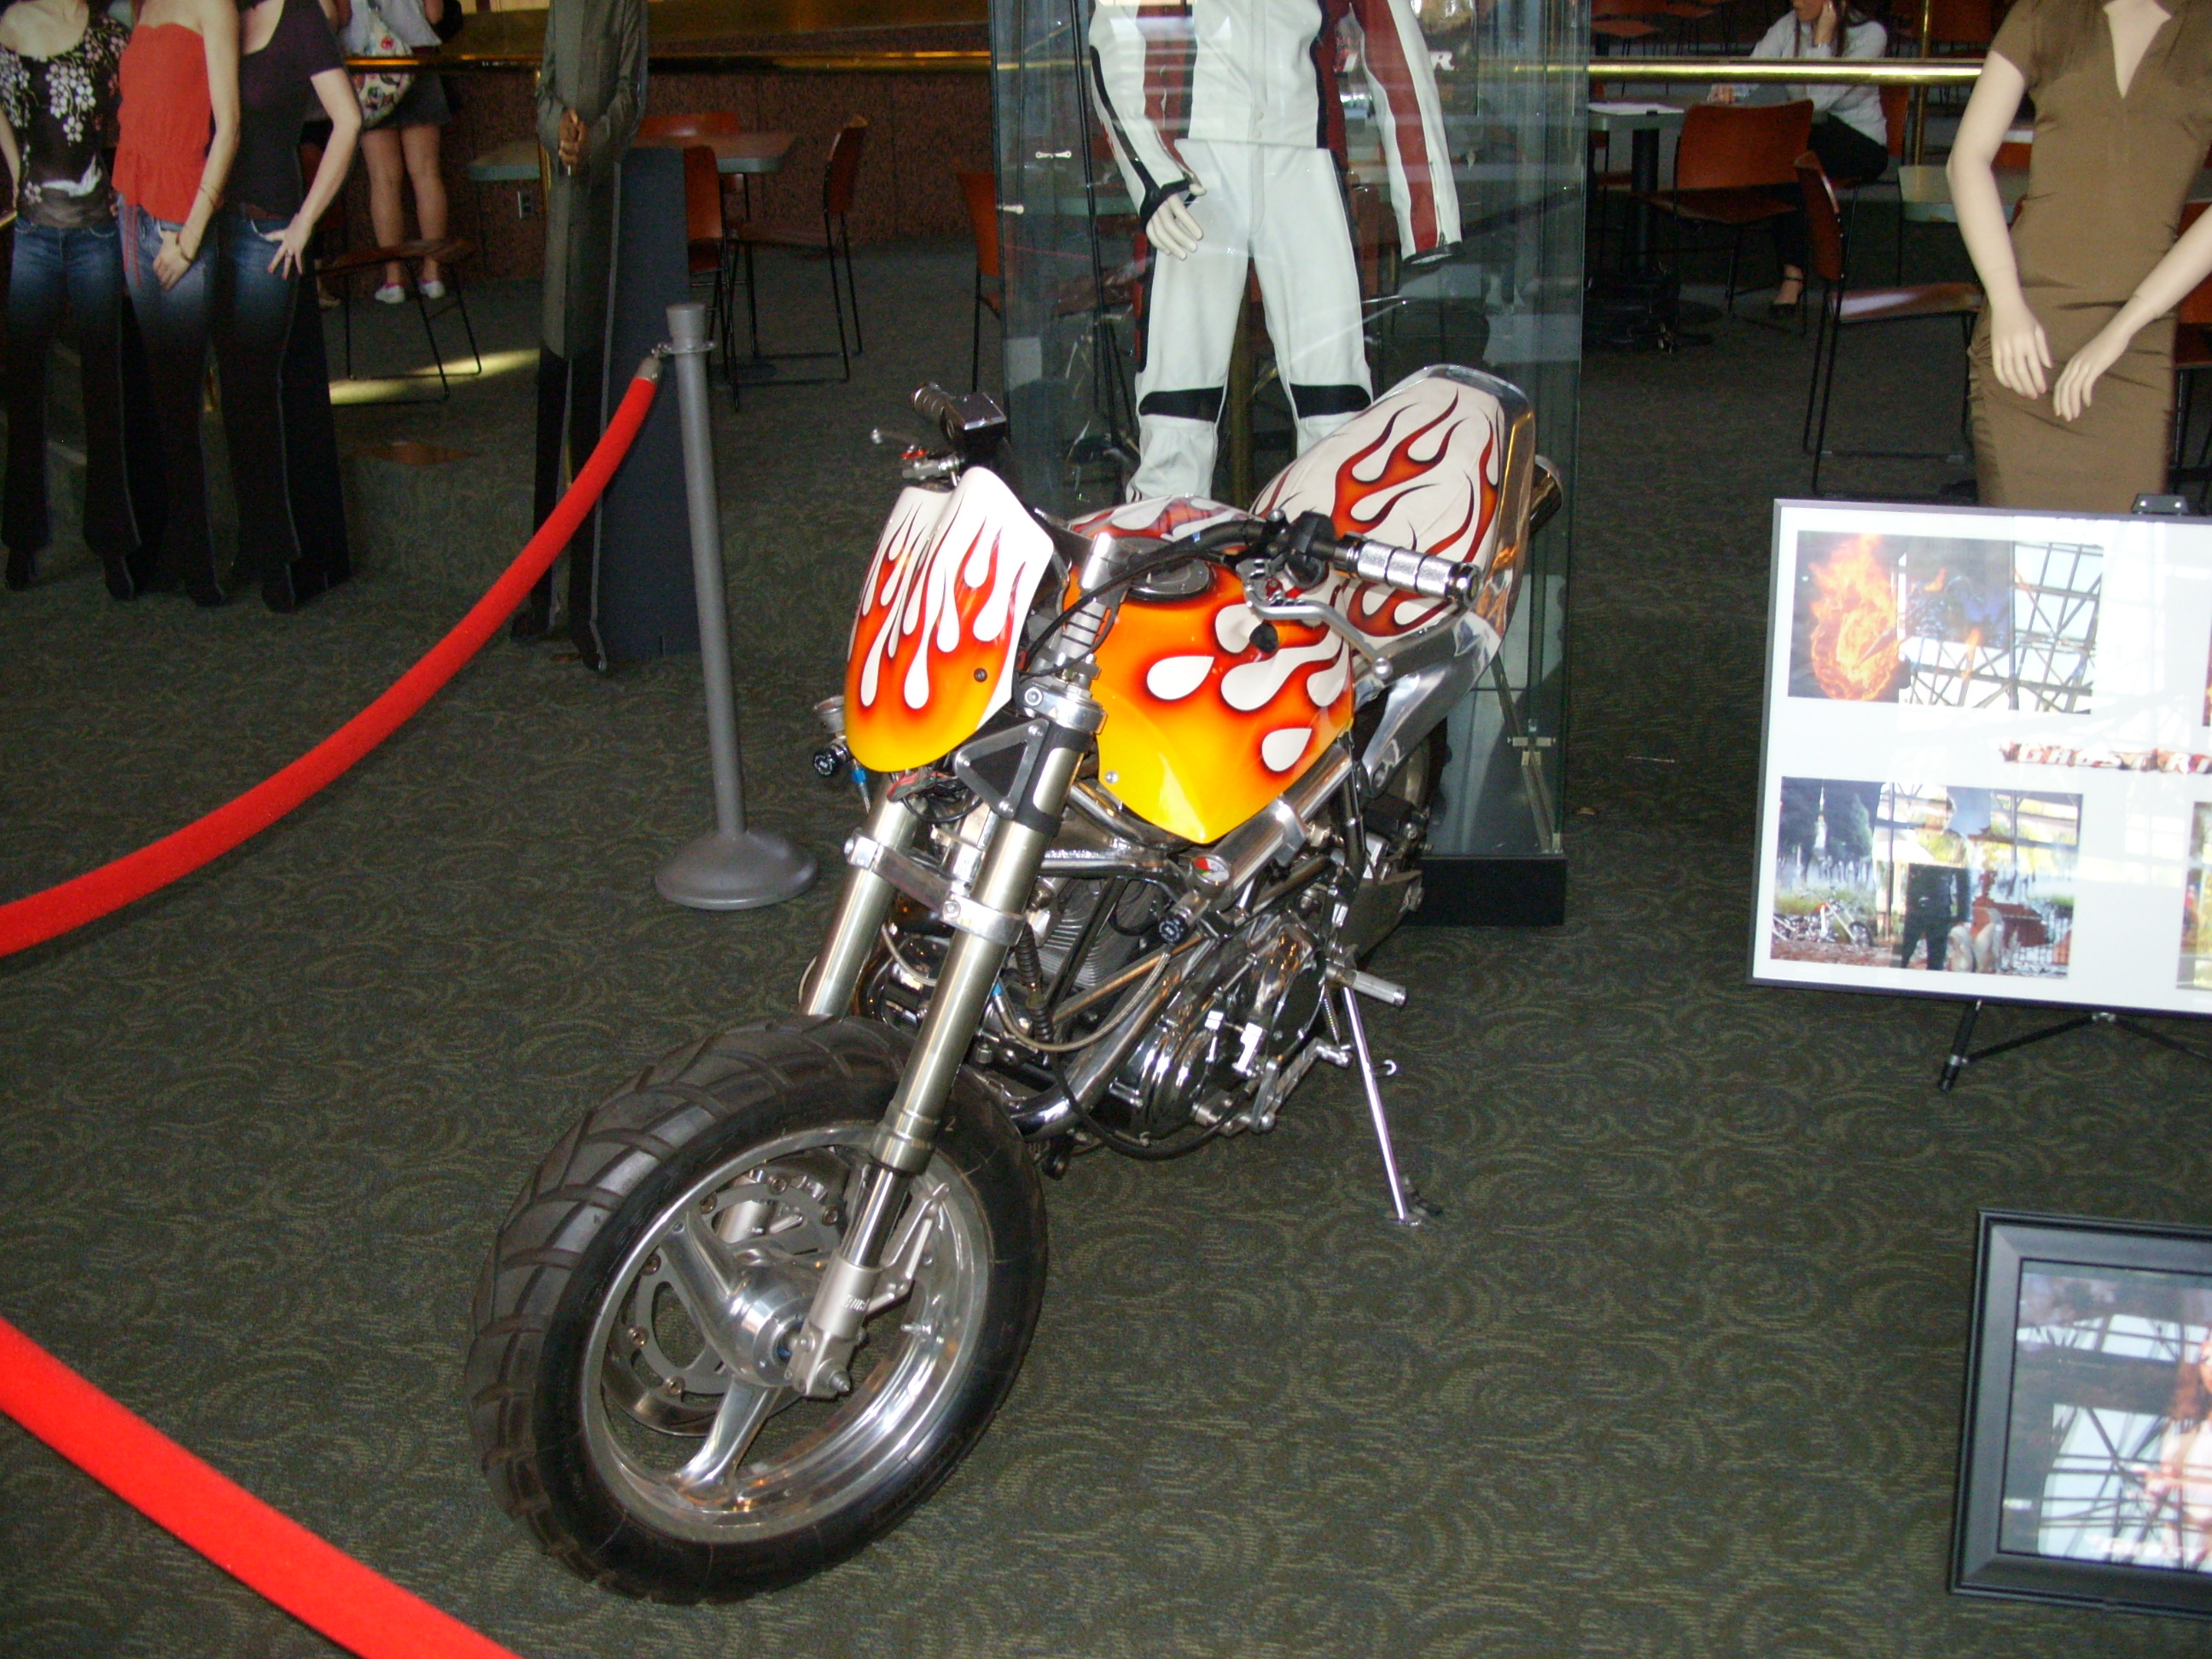 Motorcycle: Ghost Rider Motorcycle